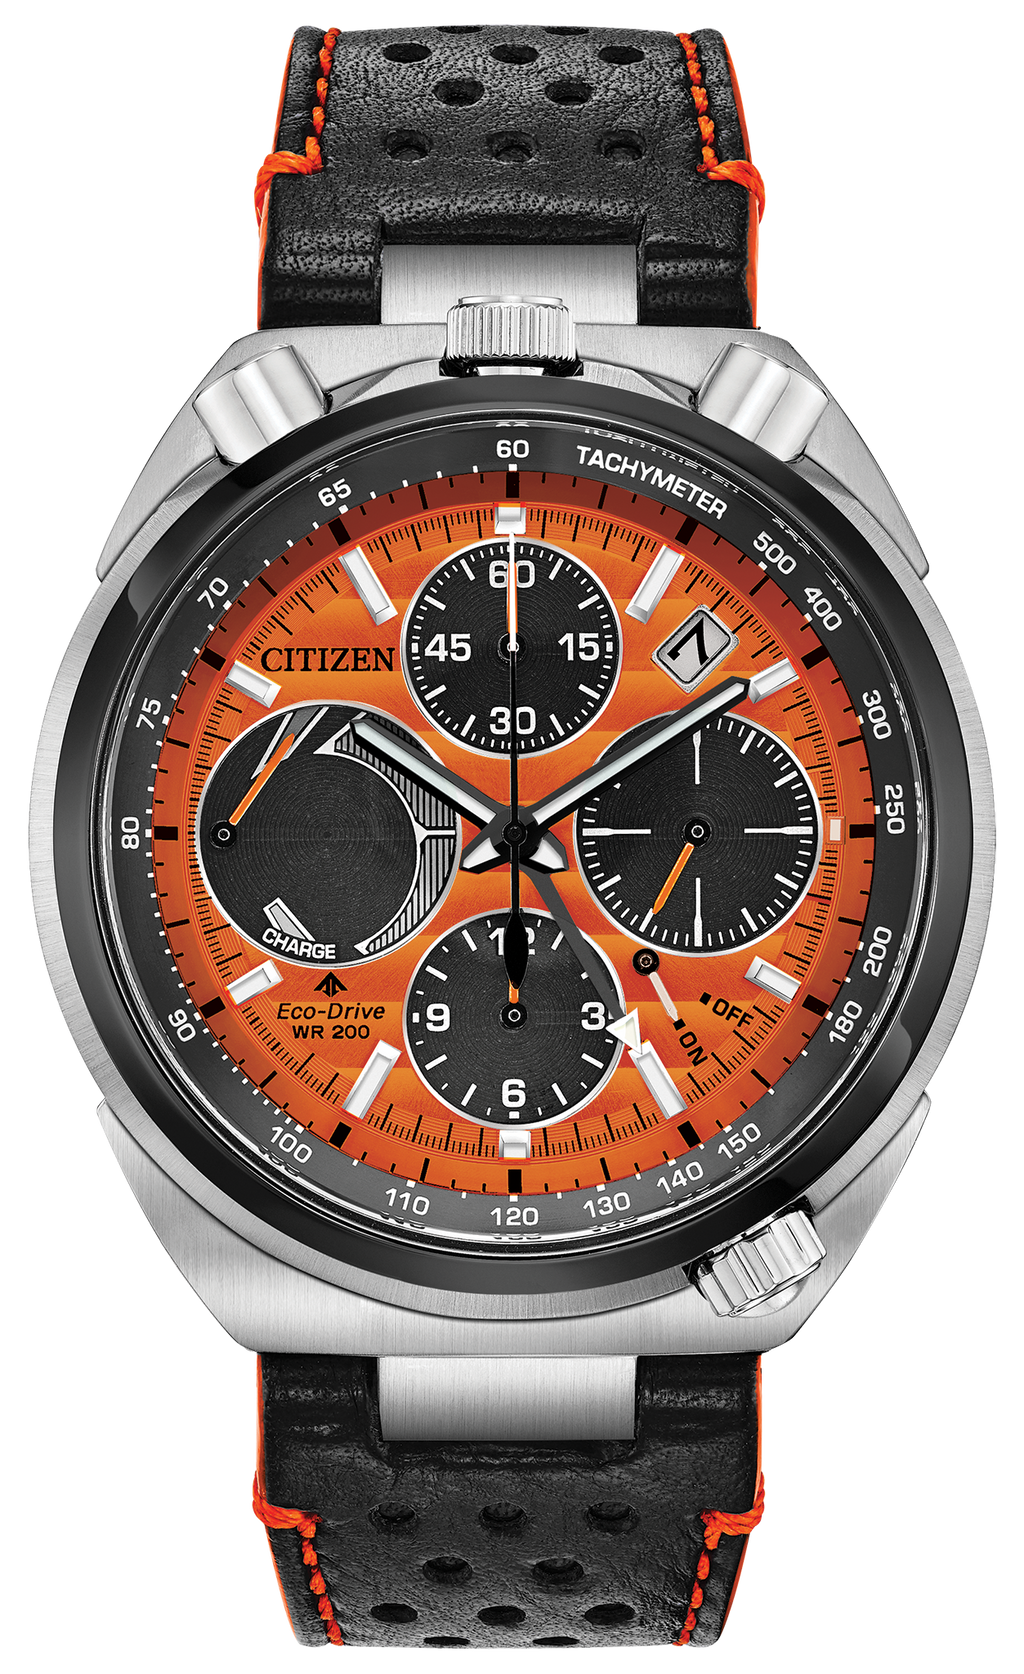 Citizen Promaster Tsuno Chronograph Racer Watch AV0078-04X